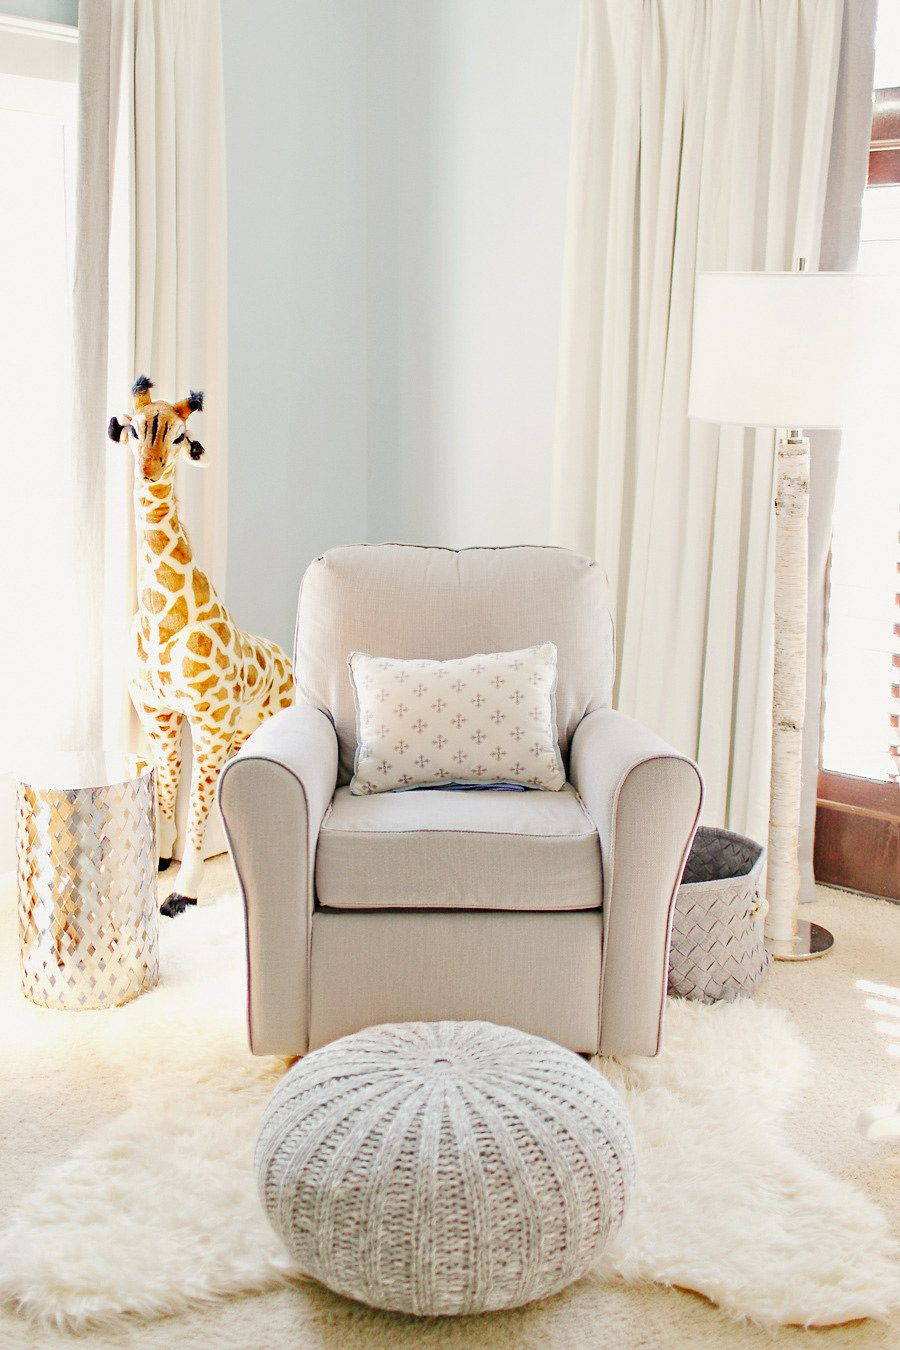 Off White Nursery With Giant Stuffed Giraffe Behind Rocking Chair